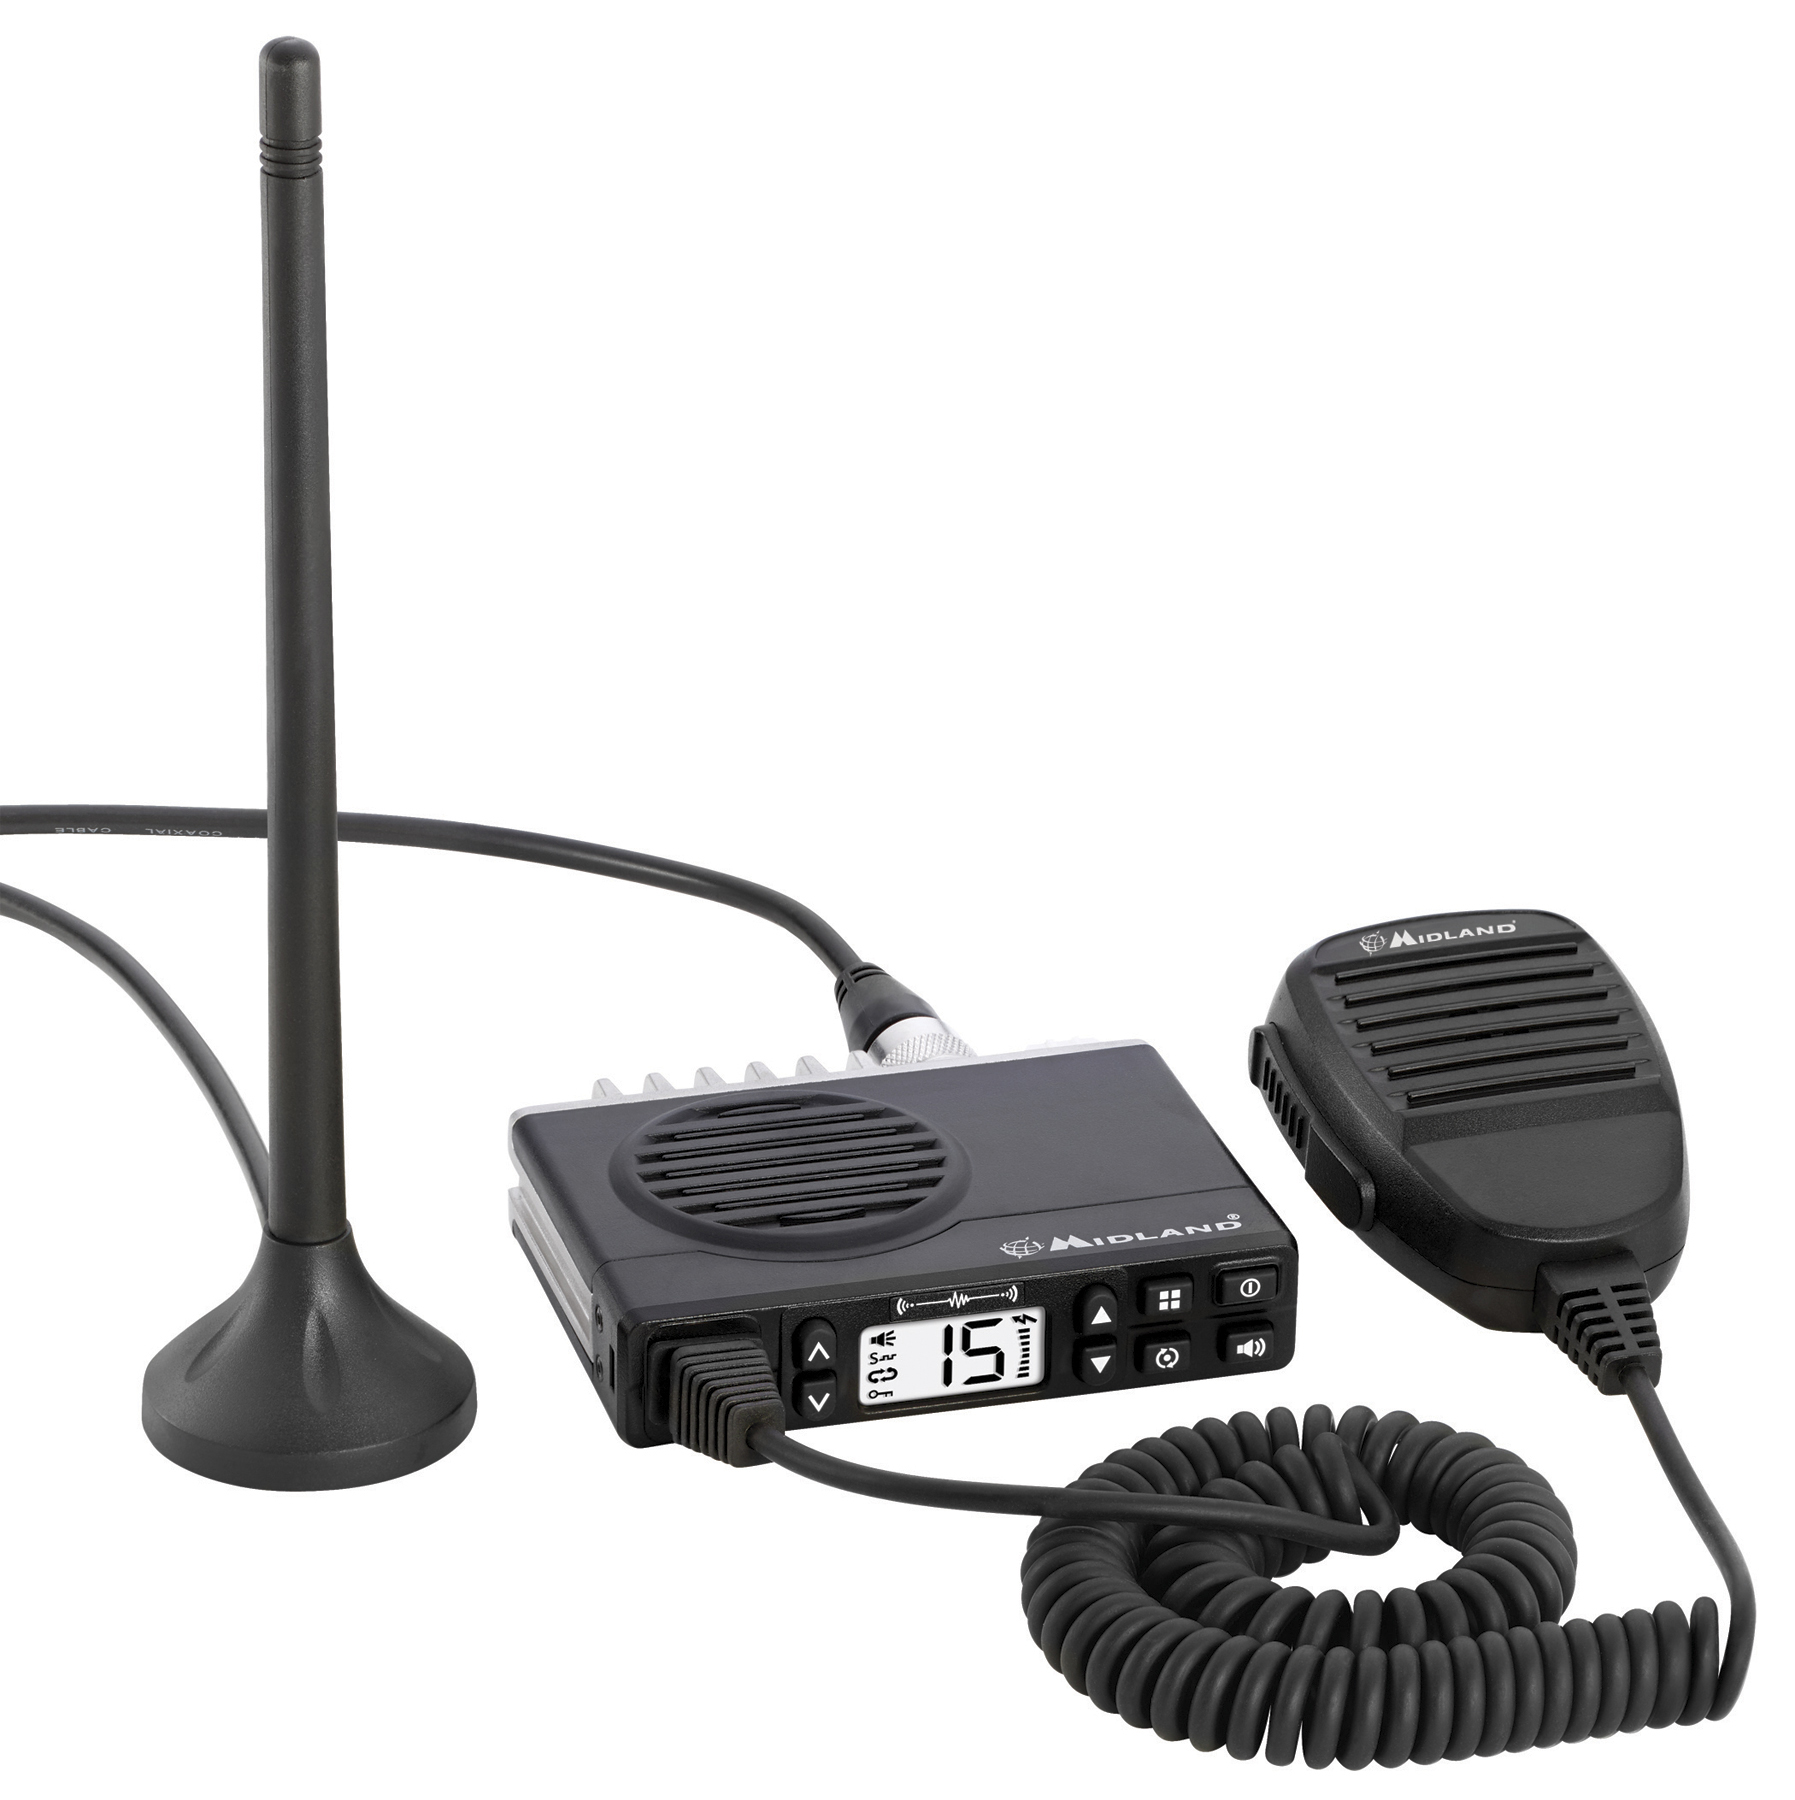 MXT100 - Midland 5 Watt 15 Channel Micro Mobile GMRS Radio